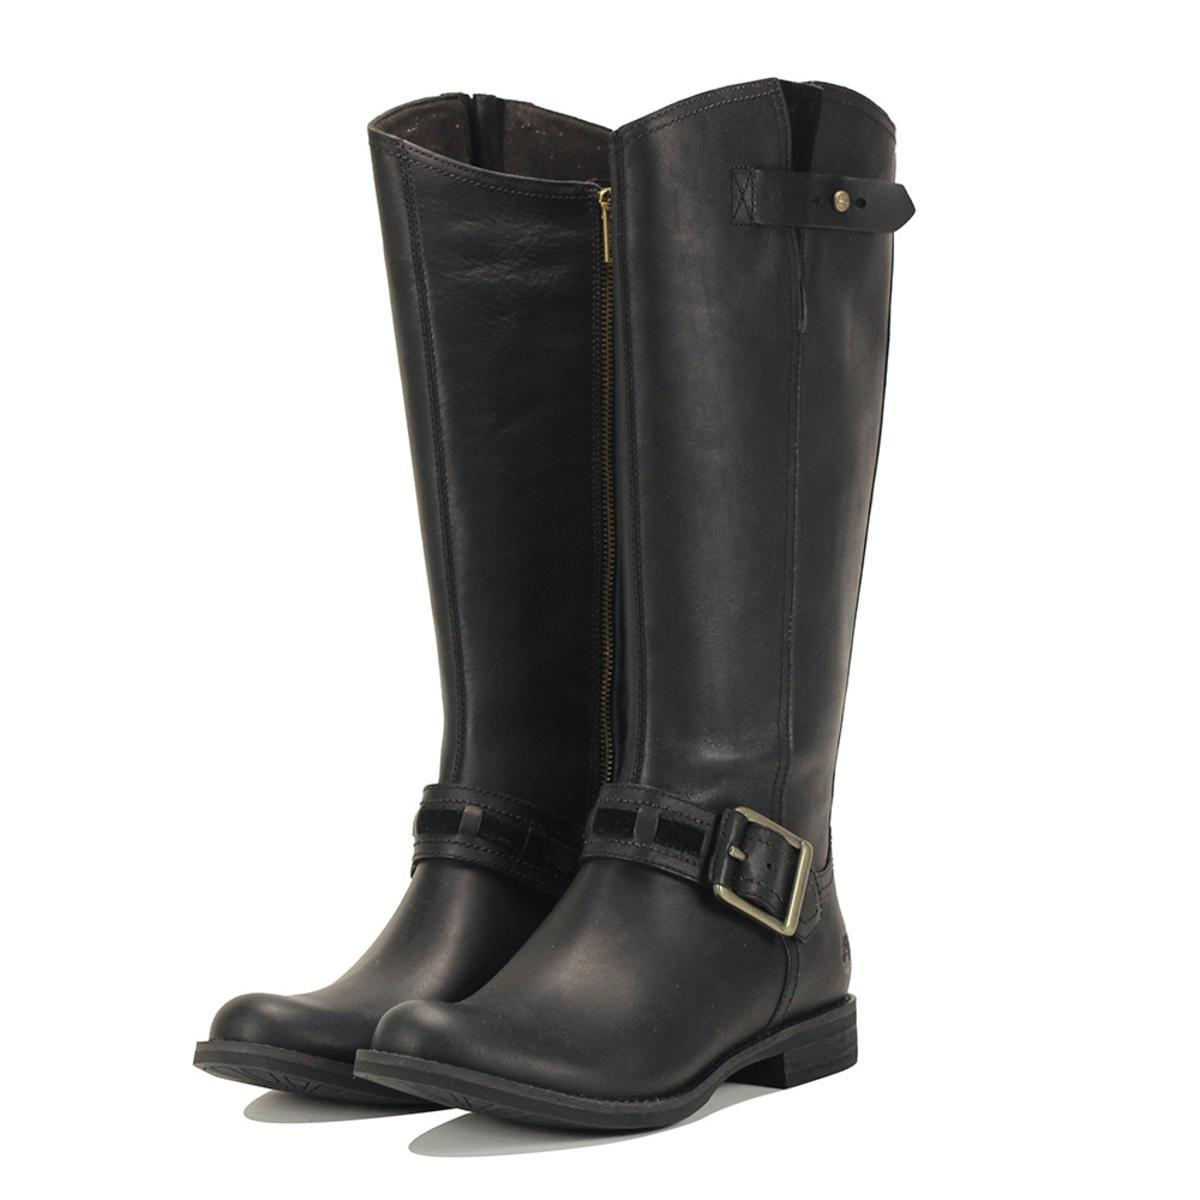 Tall Timberland boots for women best photo